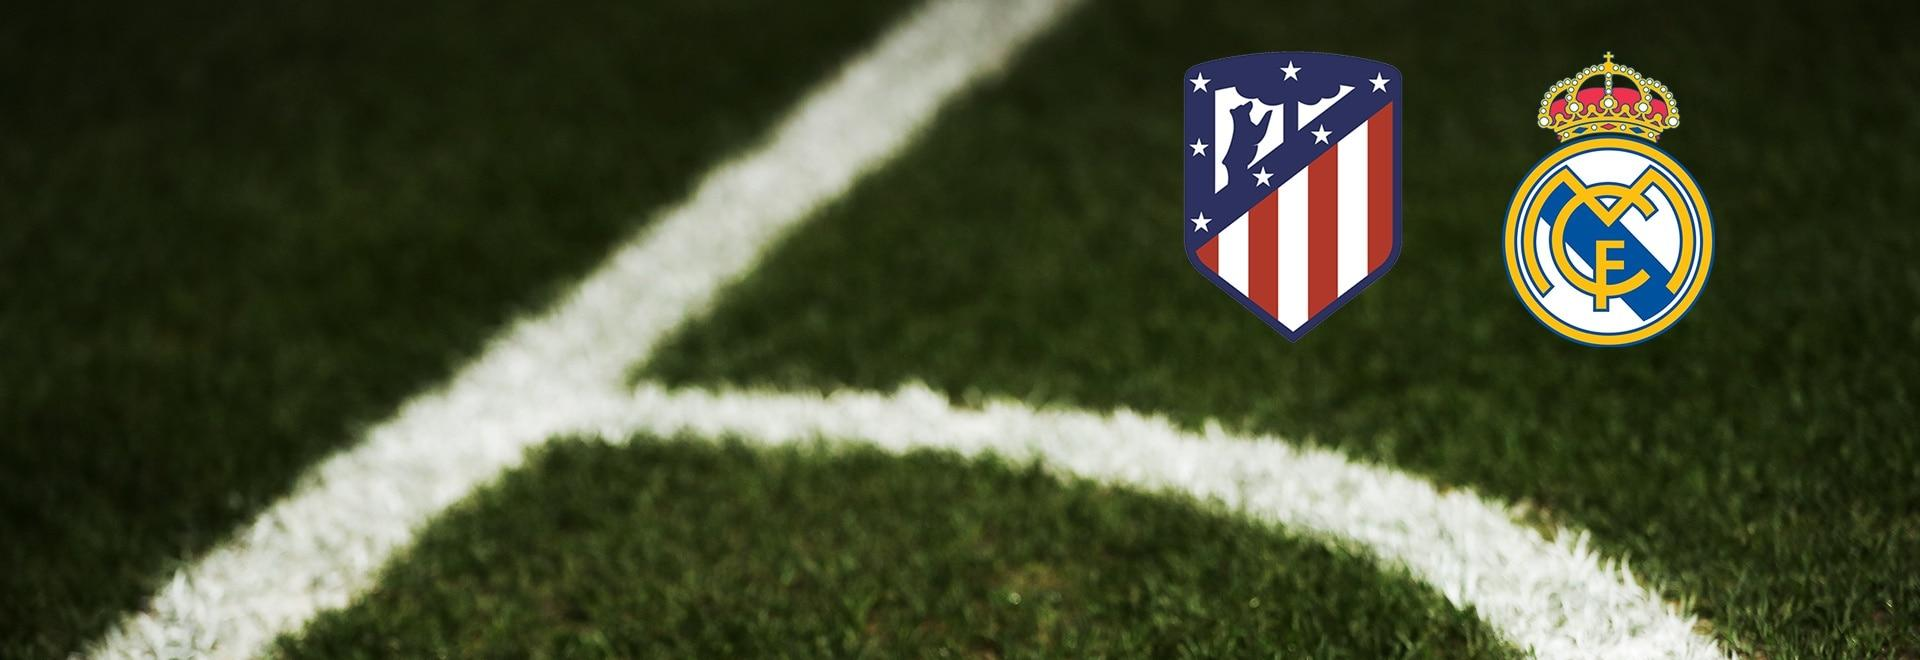 Atletico Madrid - Real Madrid. 7a g.